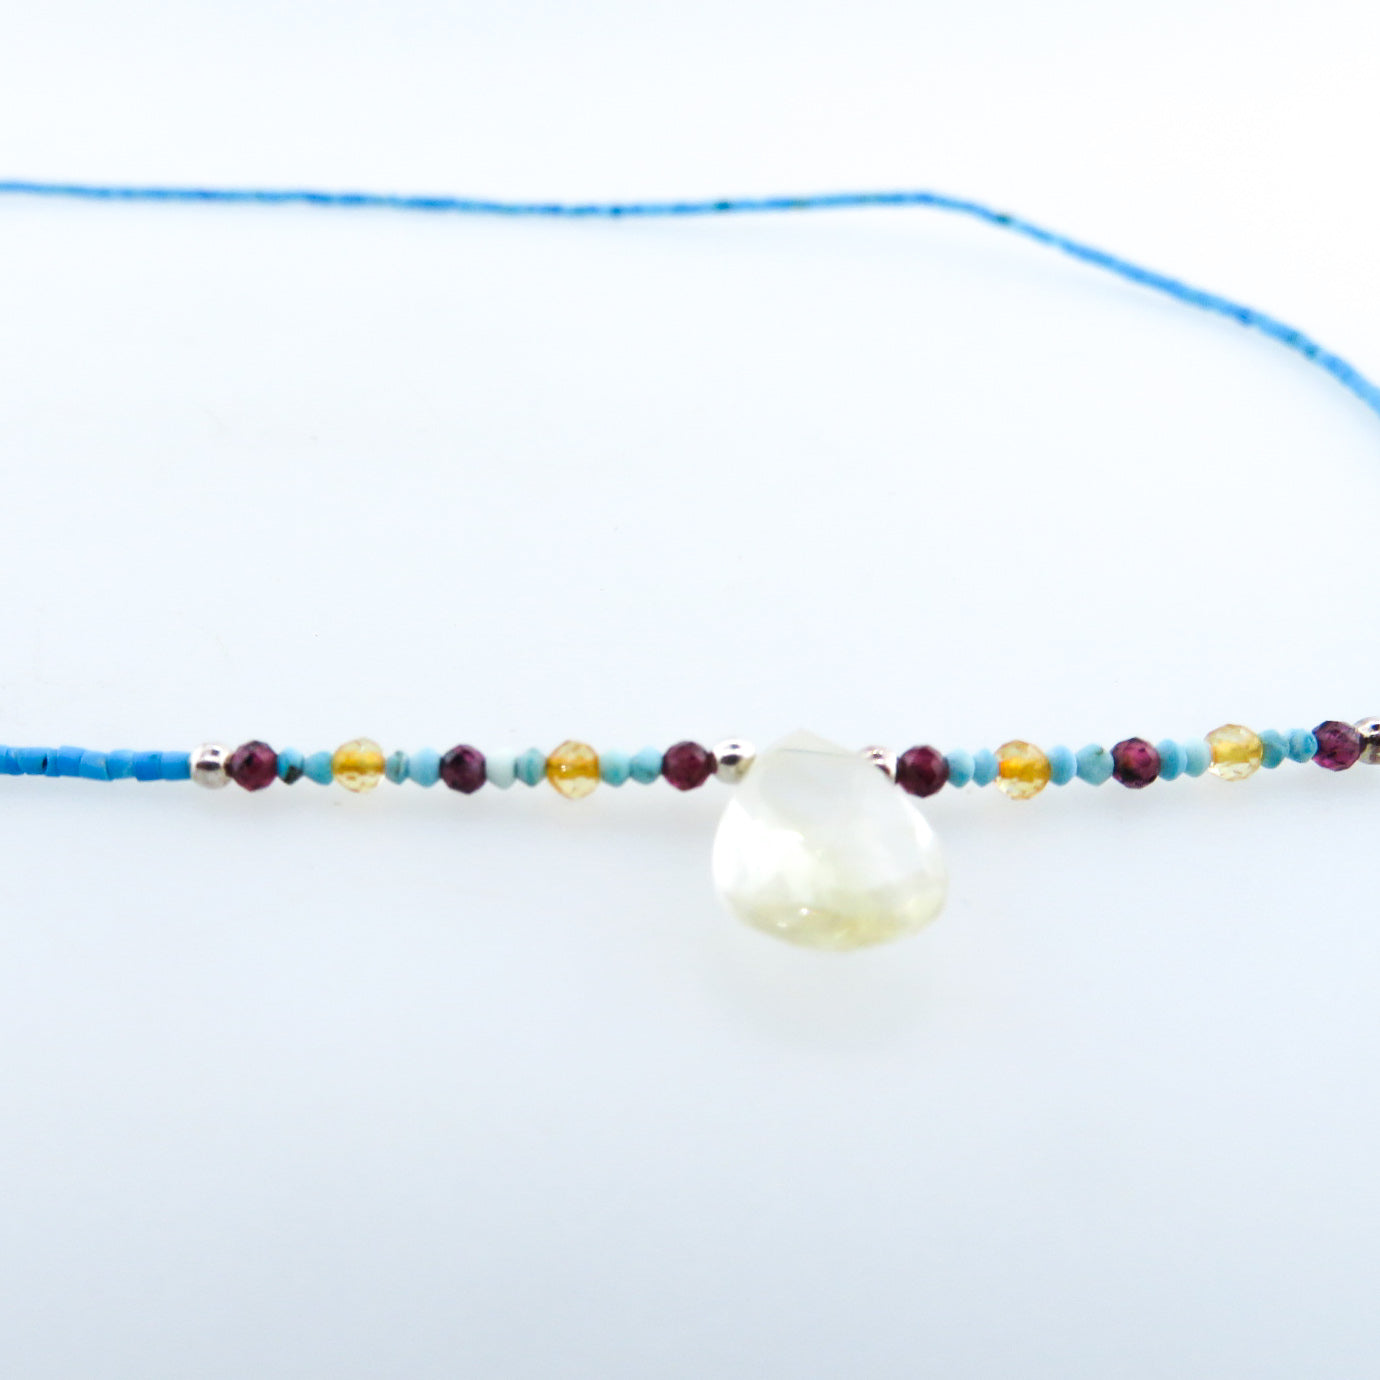 Turquoise Necklace with Citrine, Garnet, Carnelian and Silver Beads